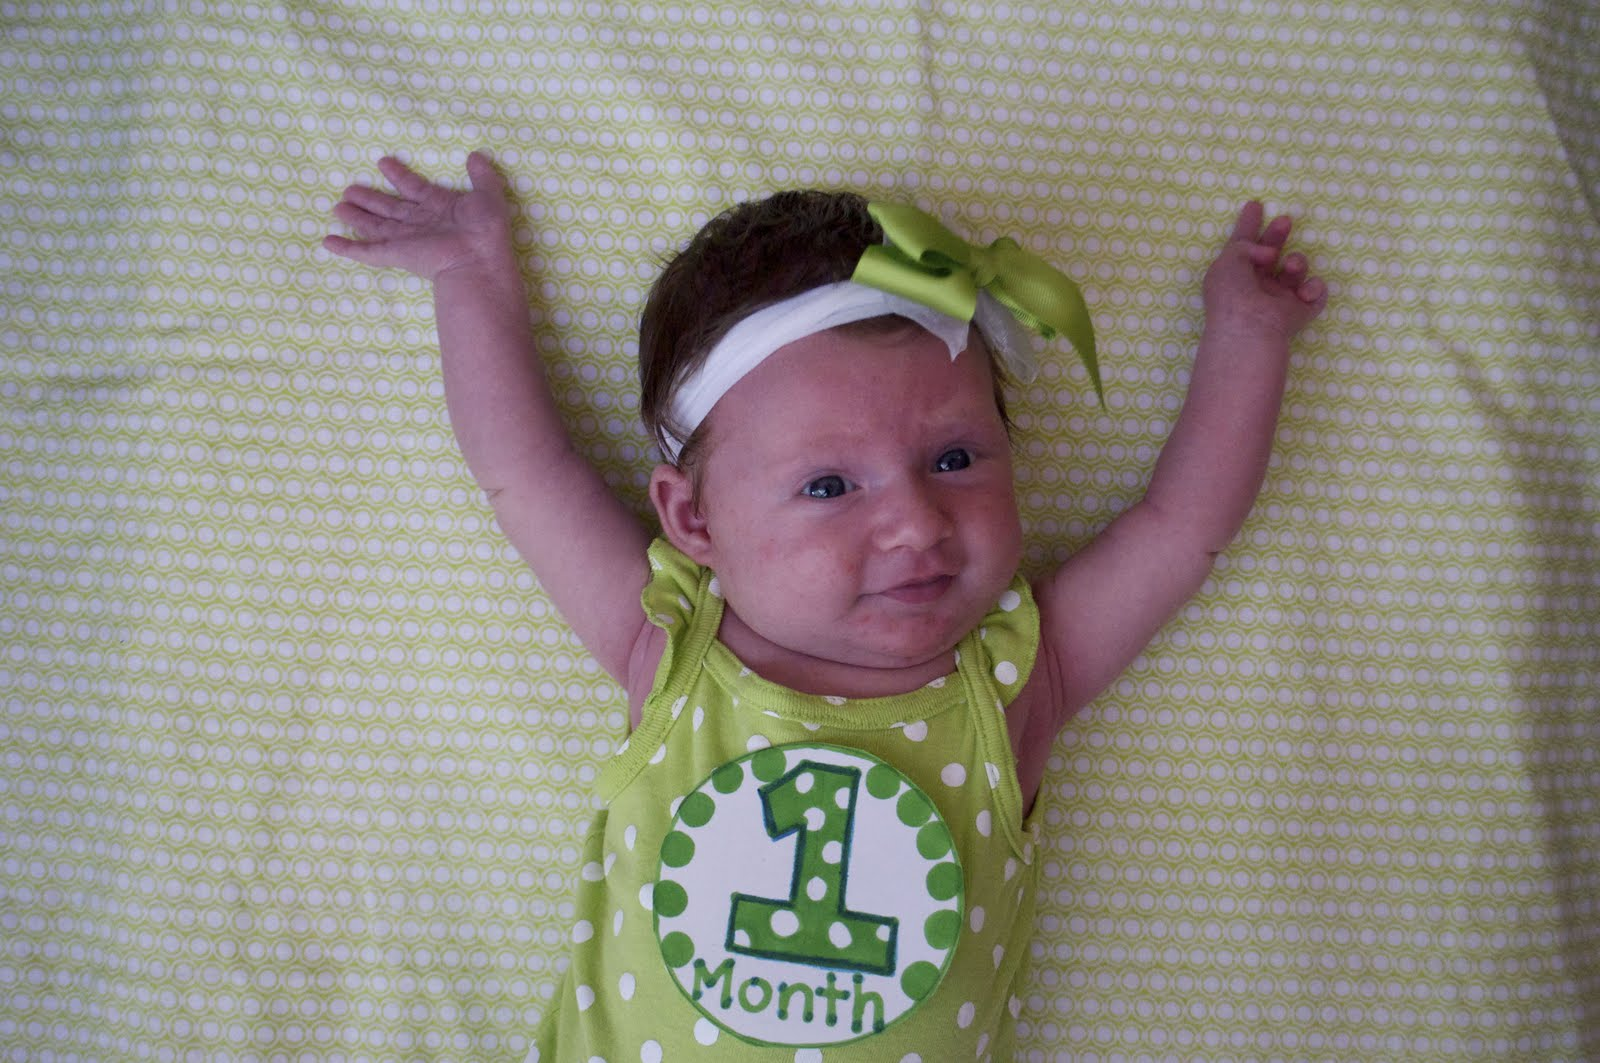 The Lentz S One Month Old